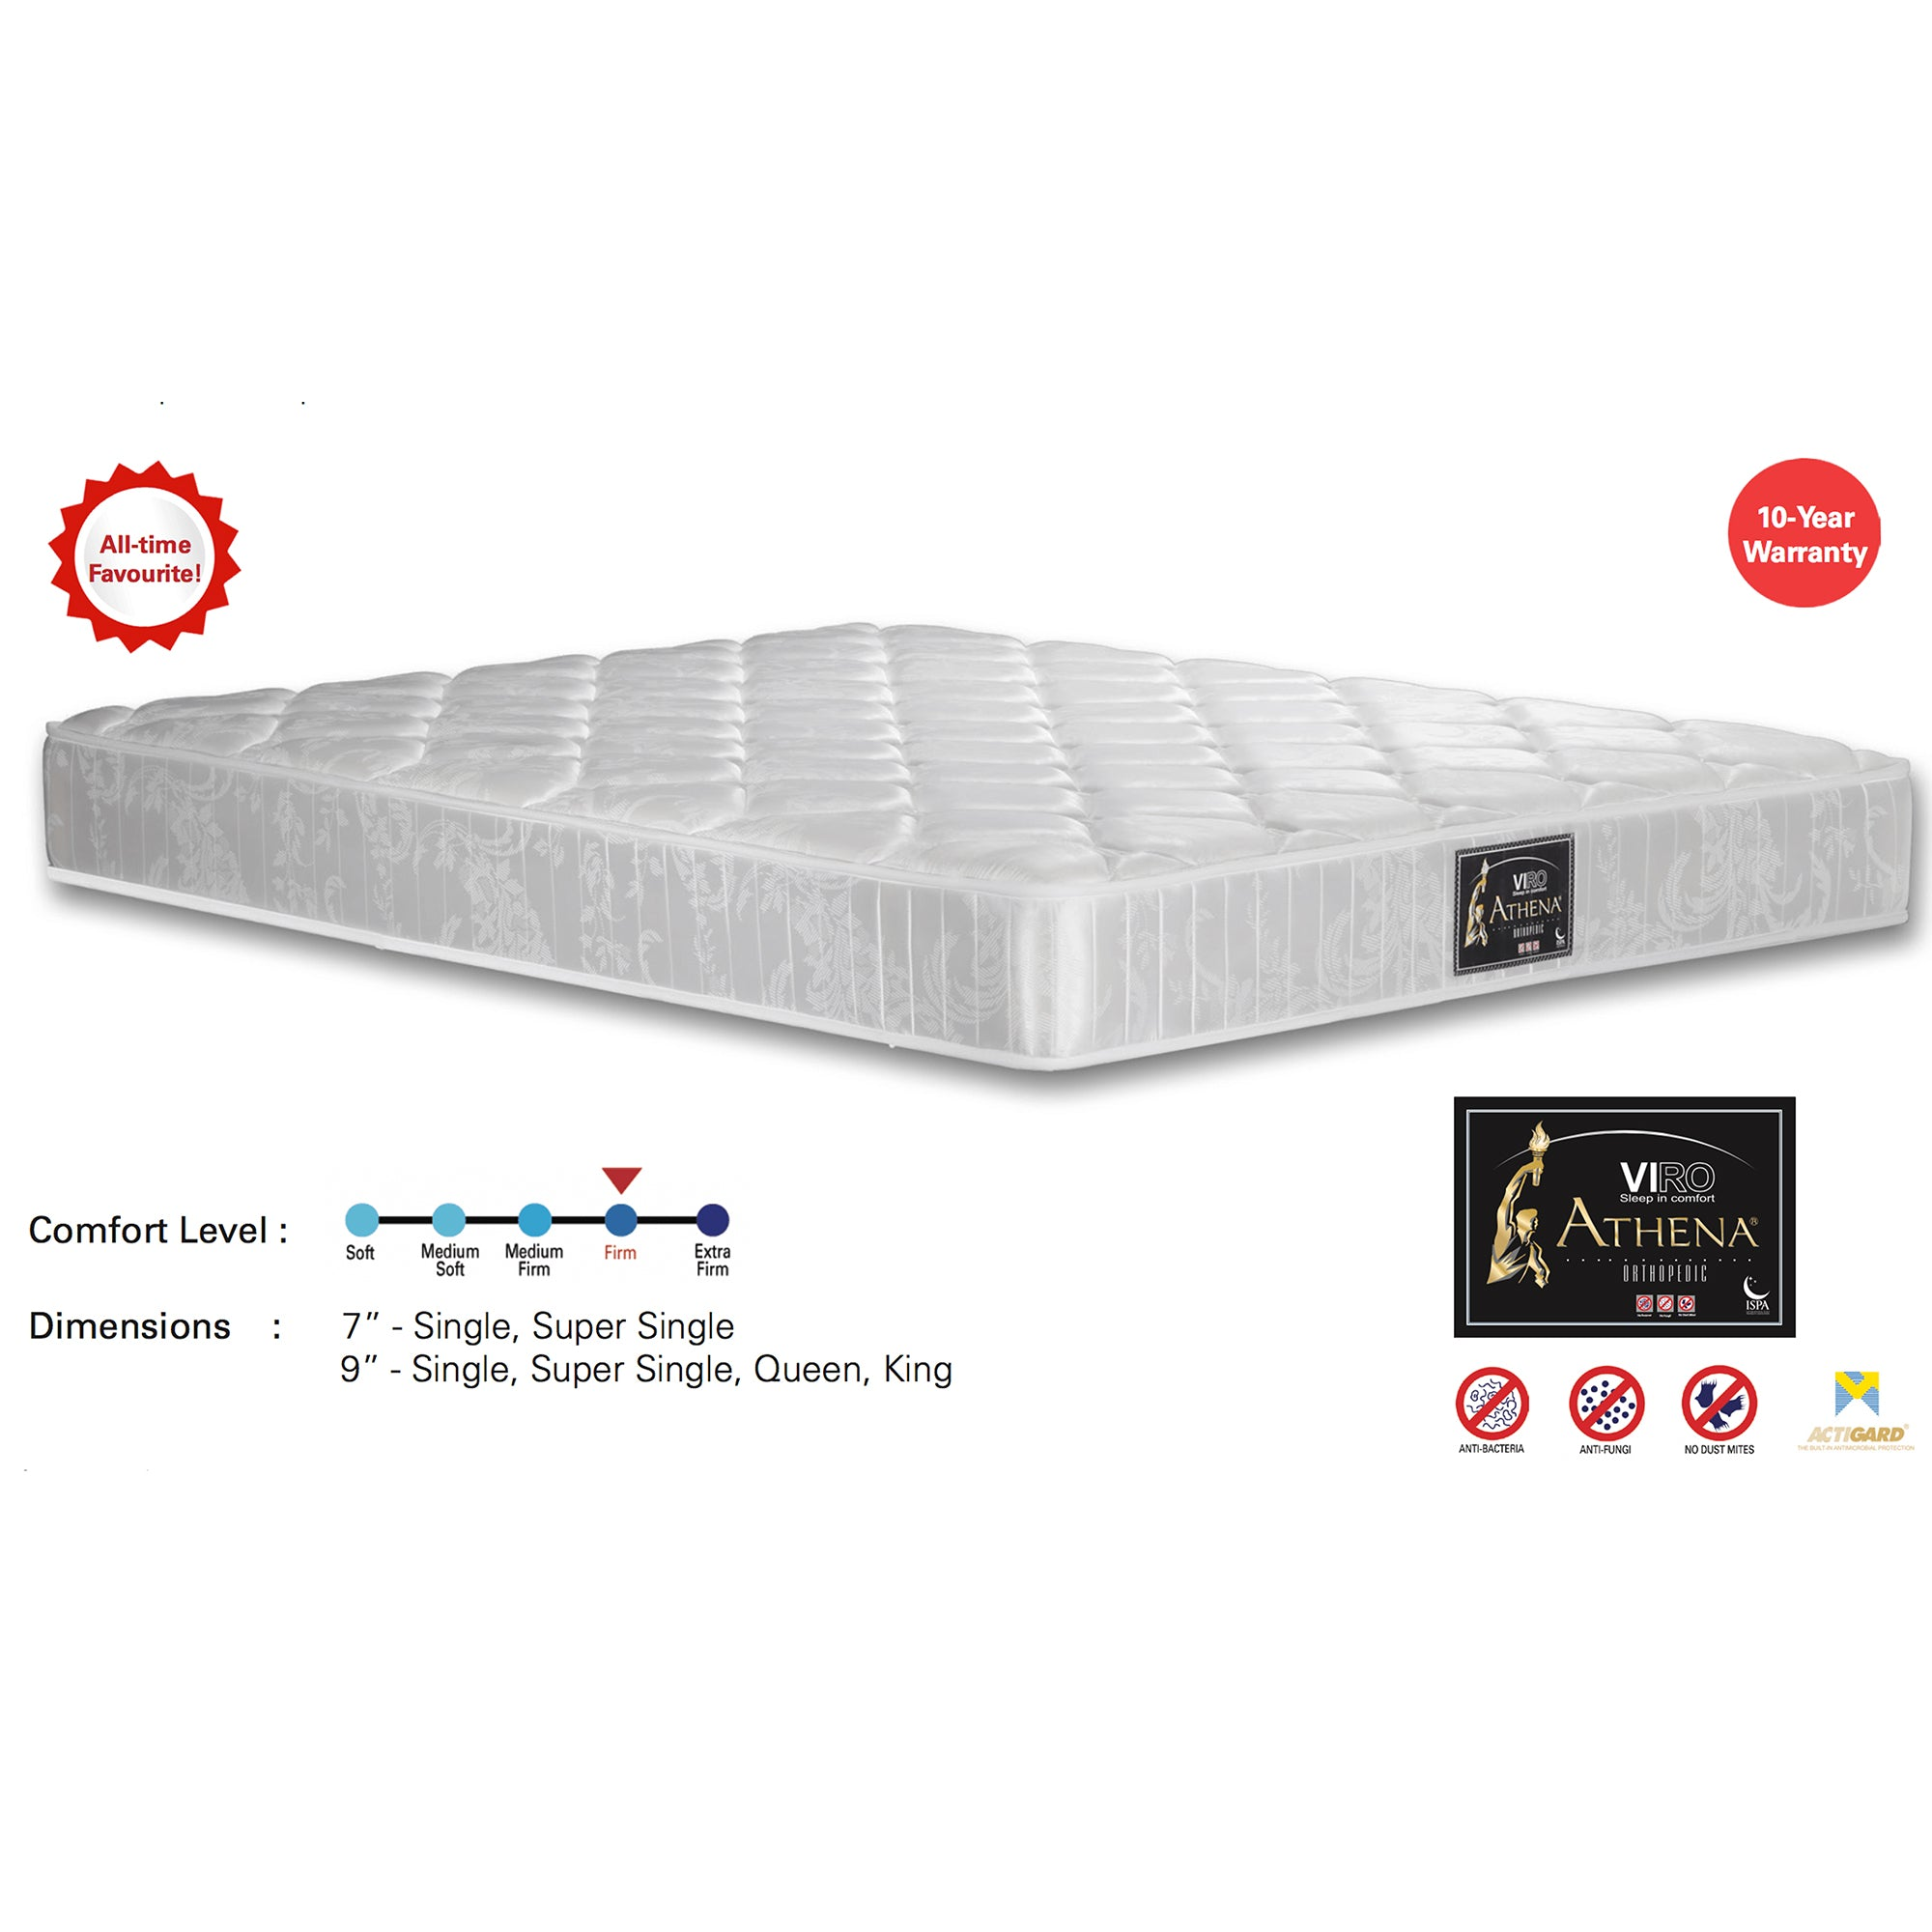 Viro Athena Spring Mattress (3 Feet Single Size x 7